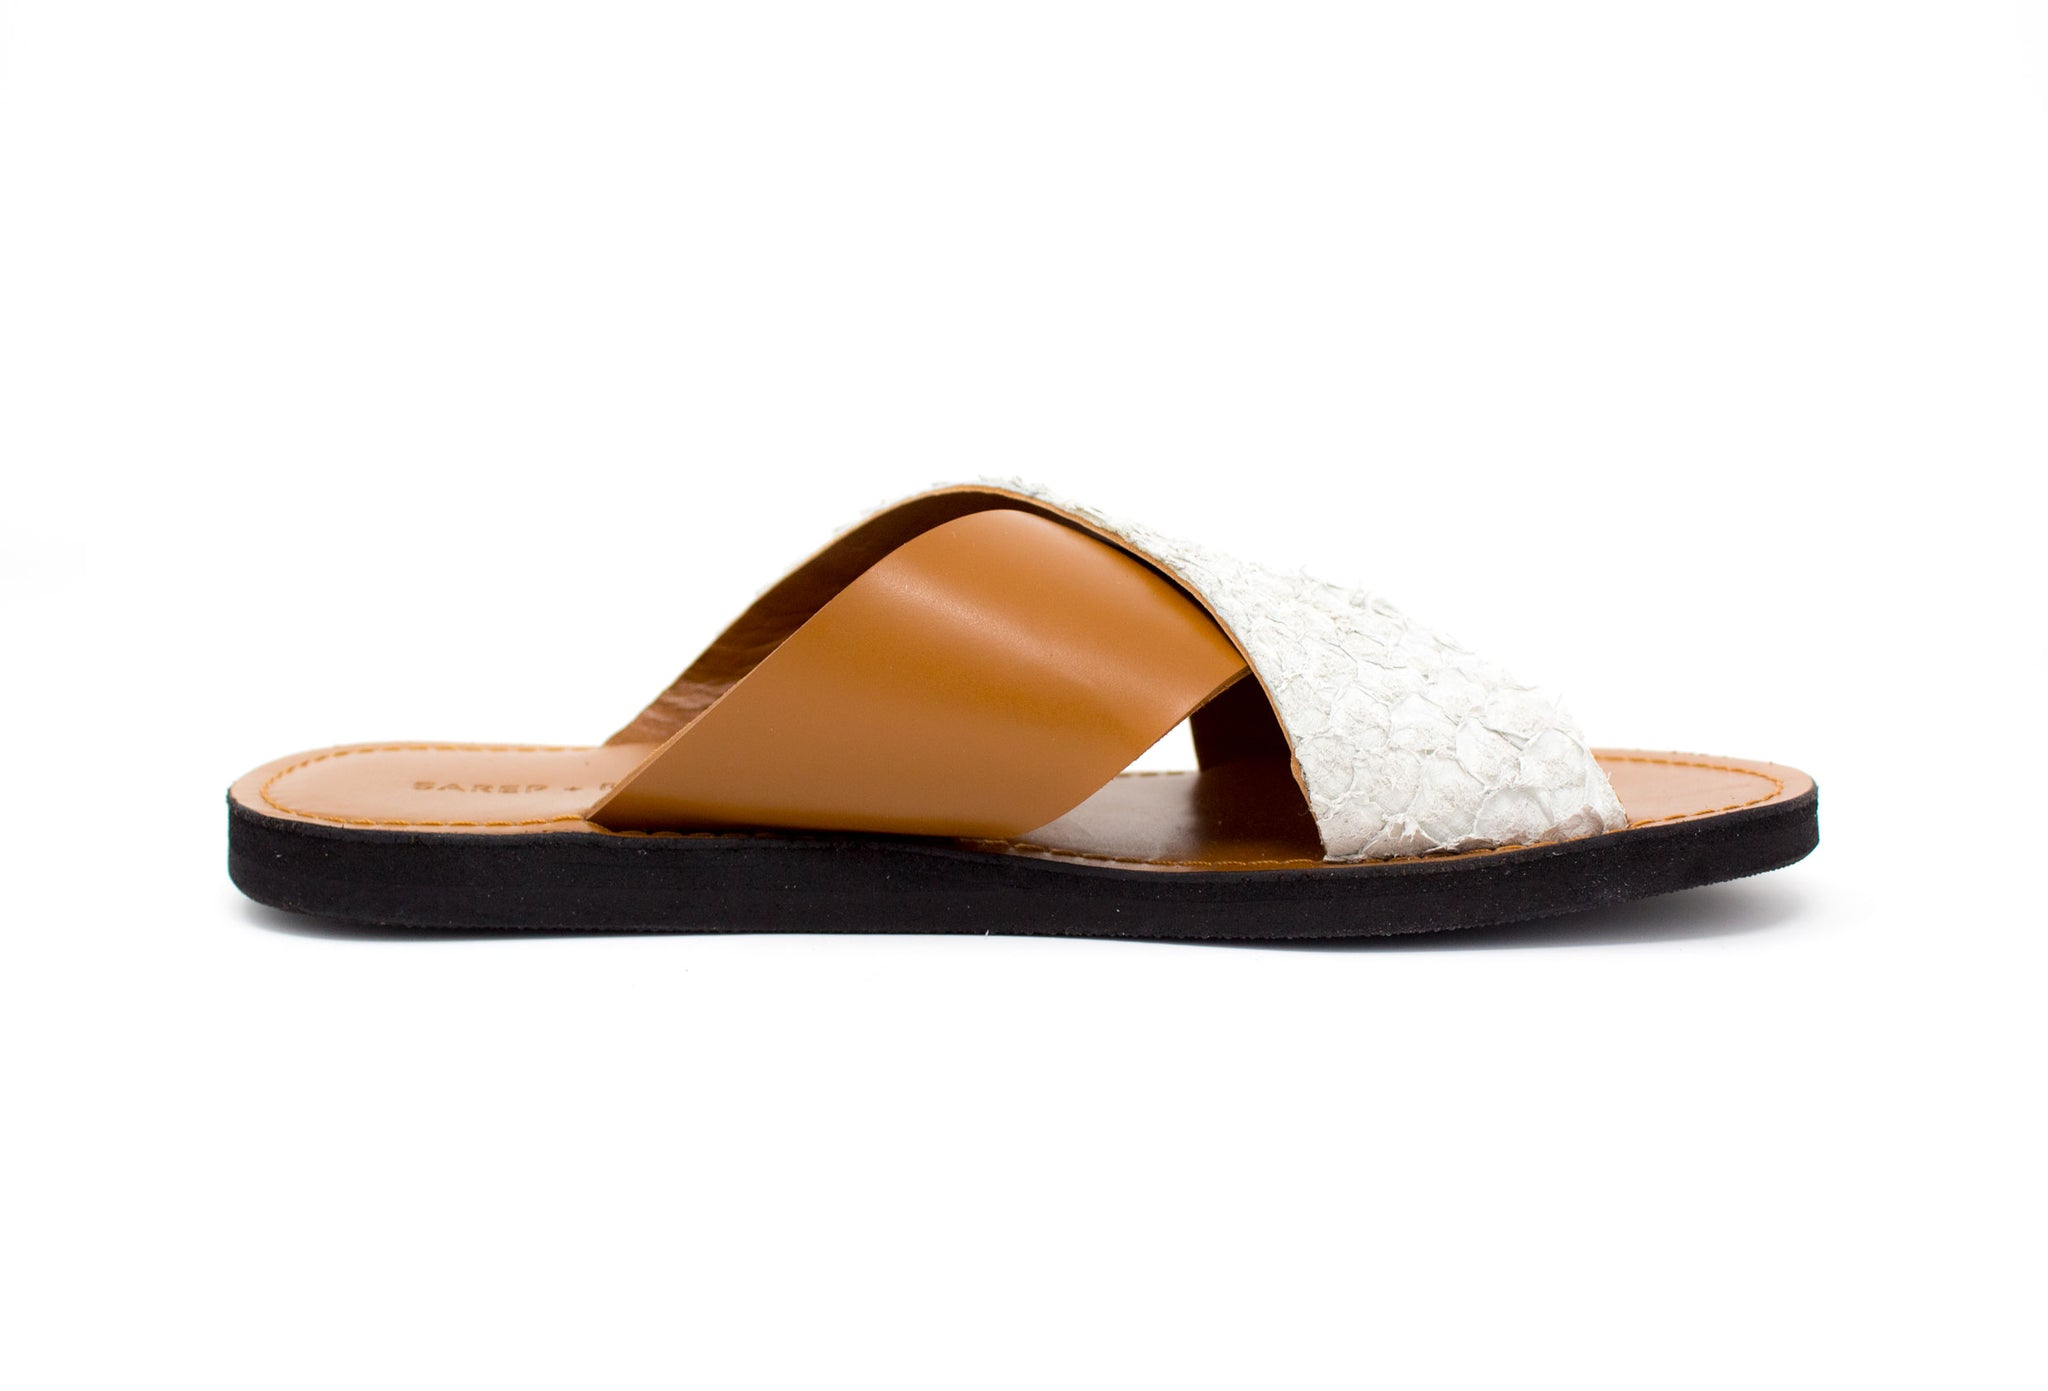 Fishskin Leather Sandal: Caramel + White